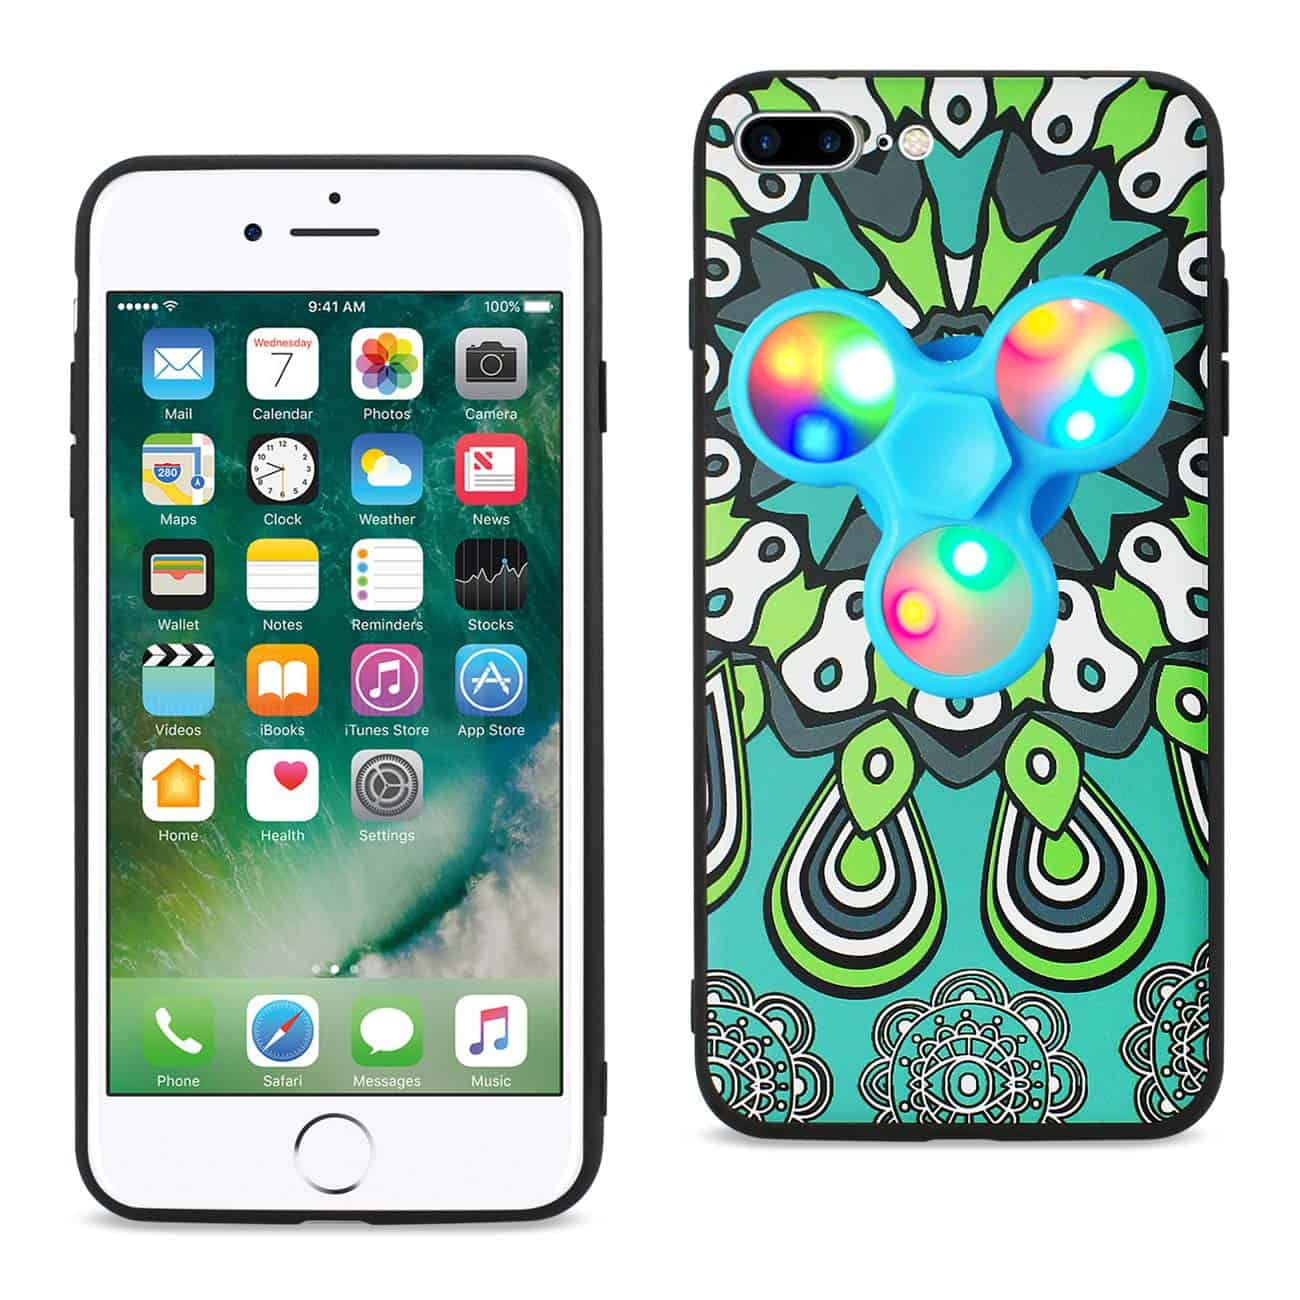 DESIGN THE INSPIRATION OF PEACOCK IPHONE 7 PLUS/ 6 PLUS/ 6S PLUS CASE WITH LED FIDGET SPINNER CLIP ON IN TURQUOISE